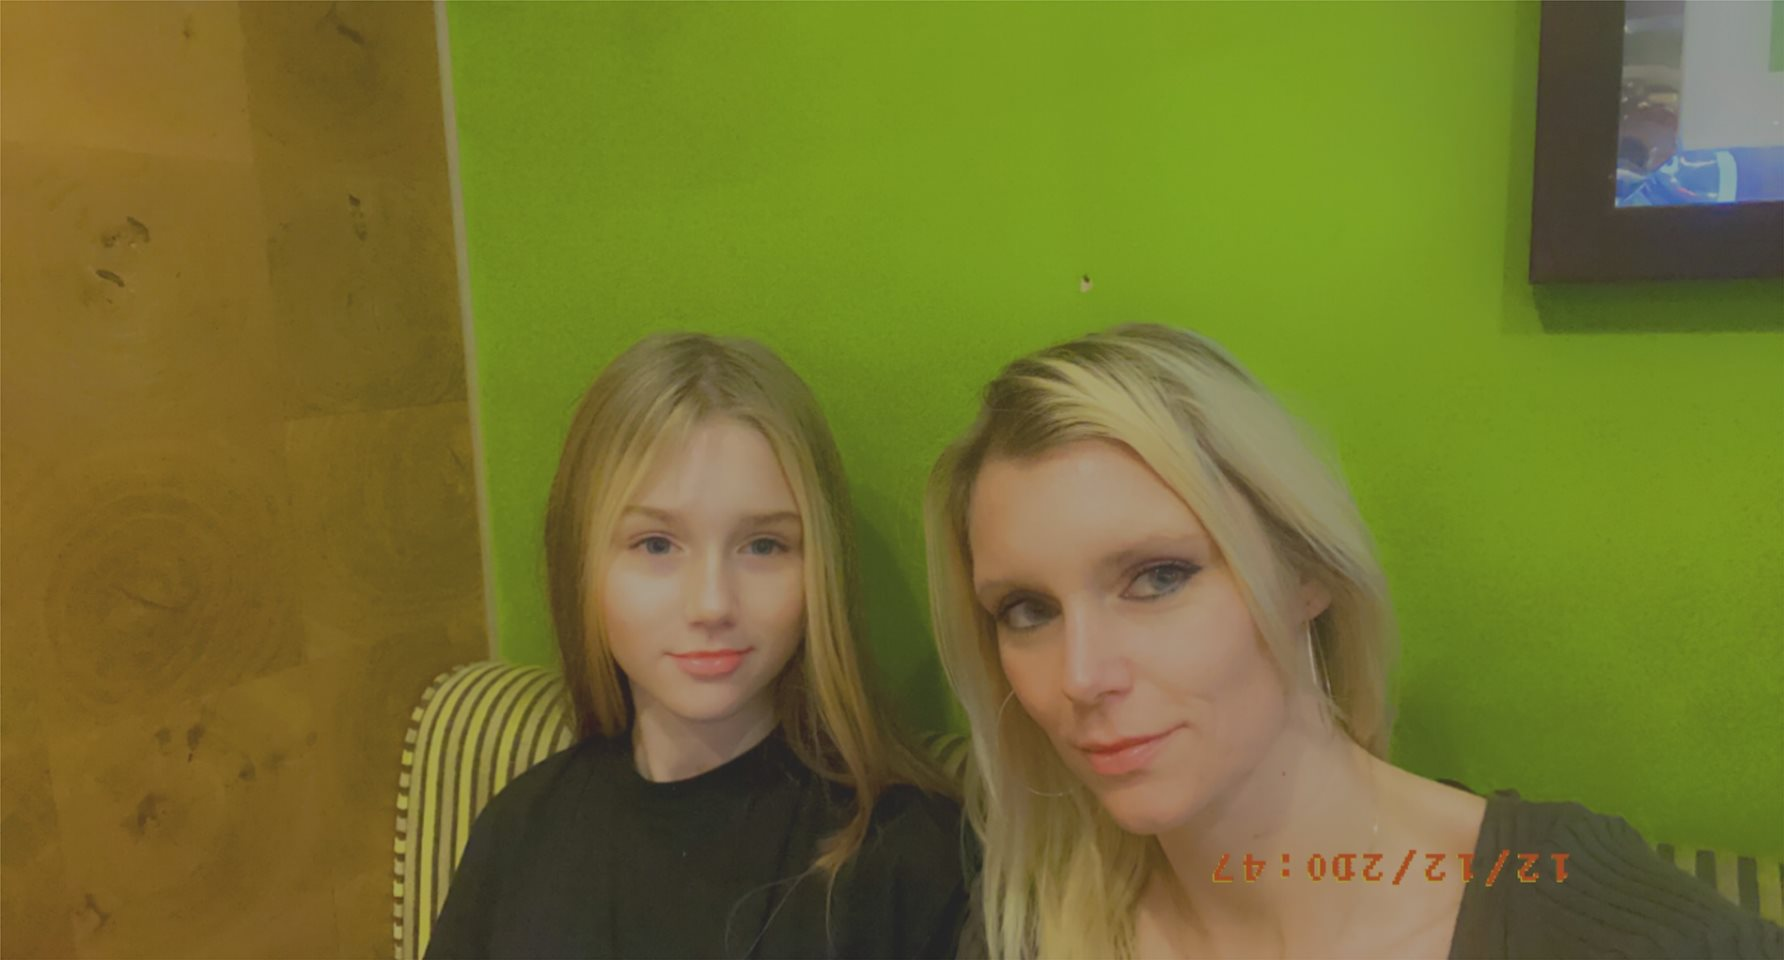 My self 37 and my 11 year old daughter